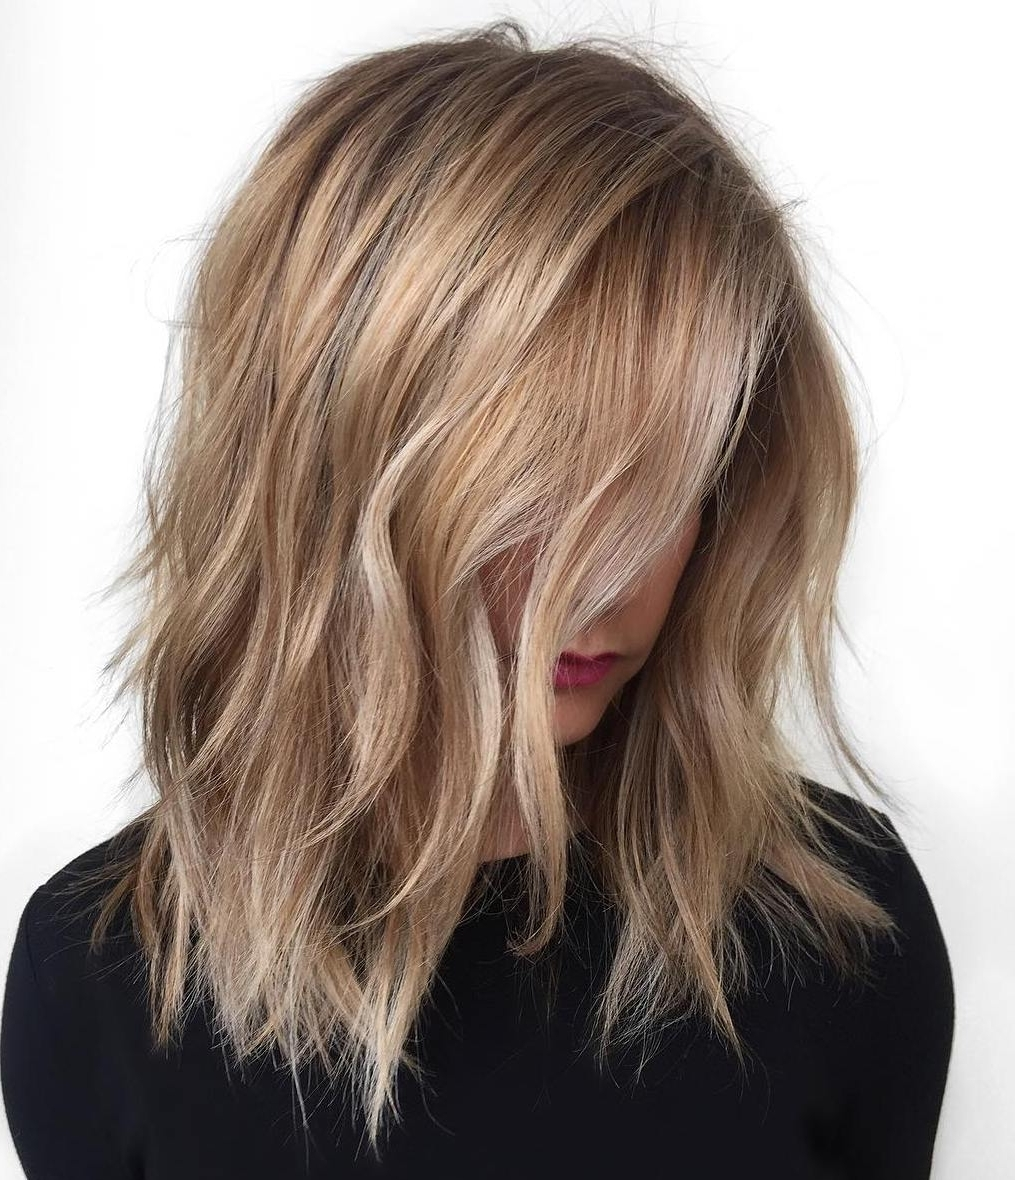 2017 Bi Color Blonde With Bangs Throughout 40 Styles With Medium Blonde Hair For Major Inspiration (View 1 of 20)